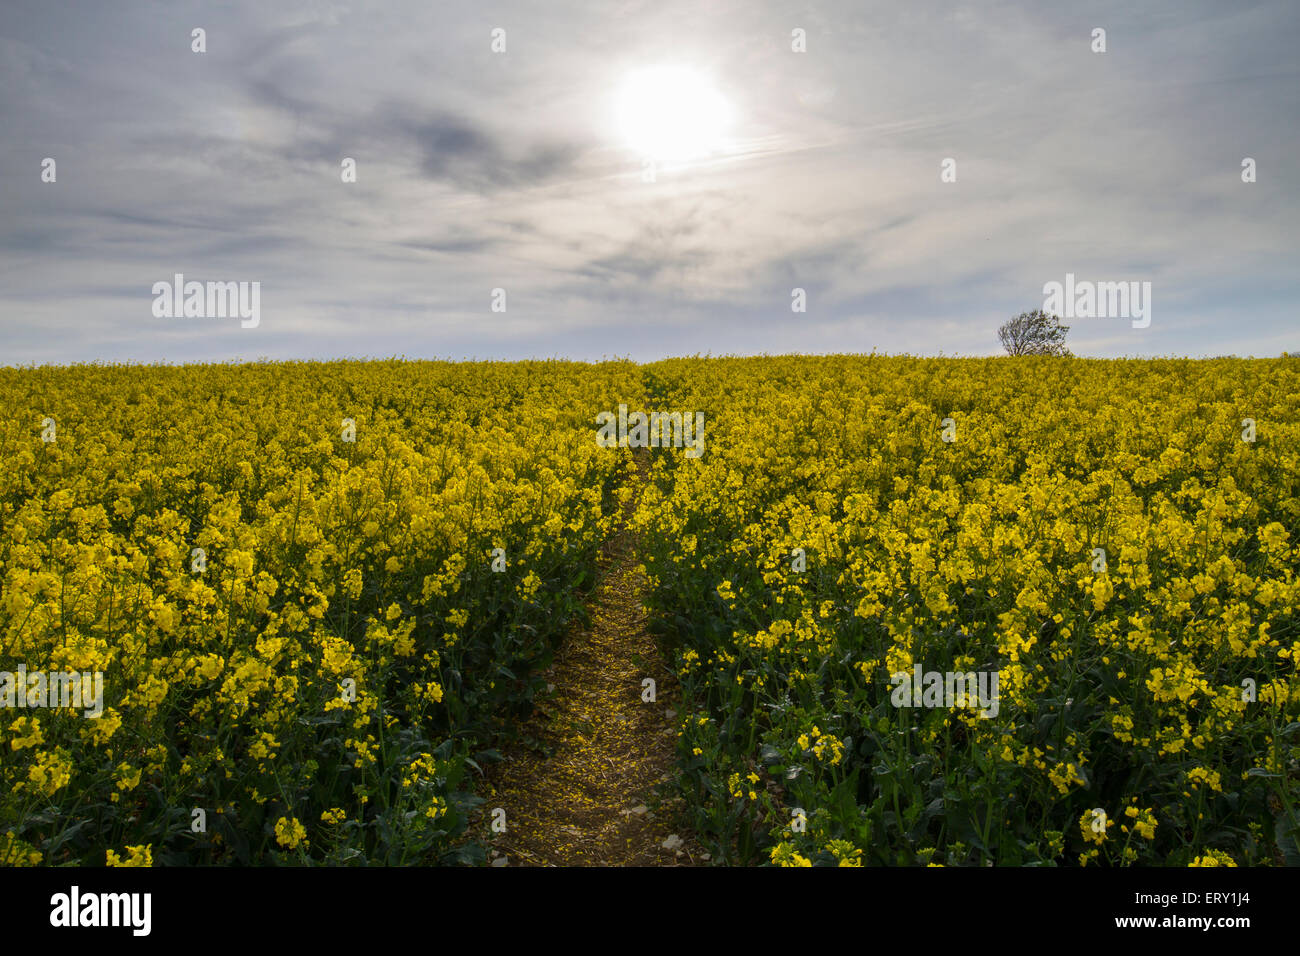 track in rapeseed field heading for evening sun - Stock Image